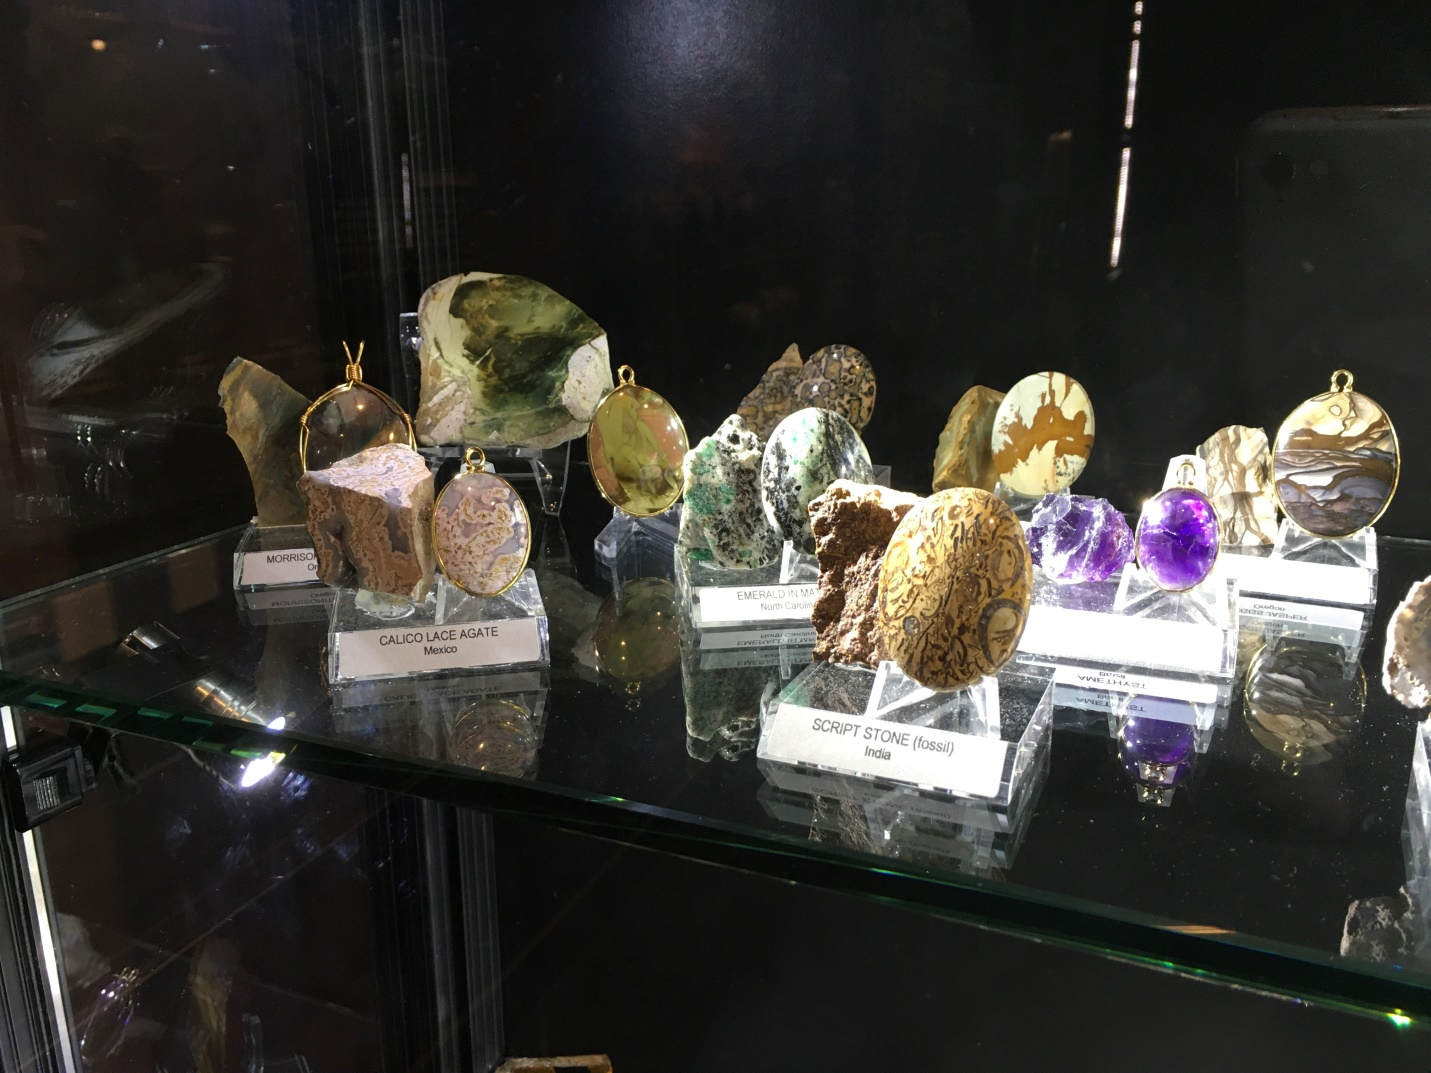 Mineral Collector Unearths Beauty To Share